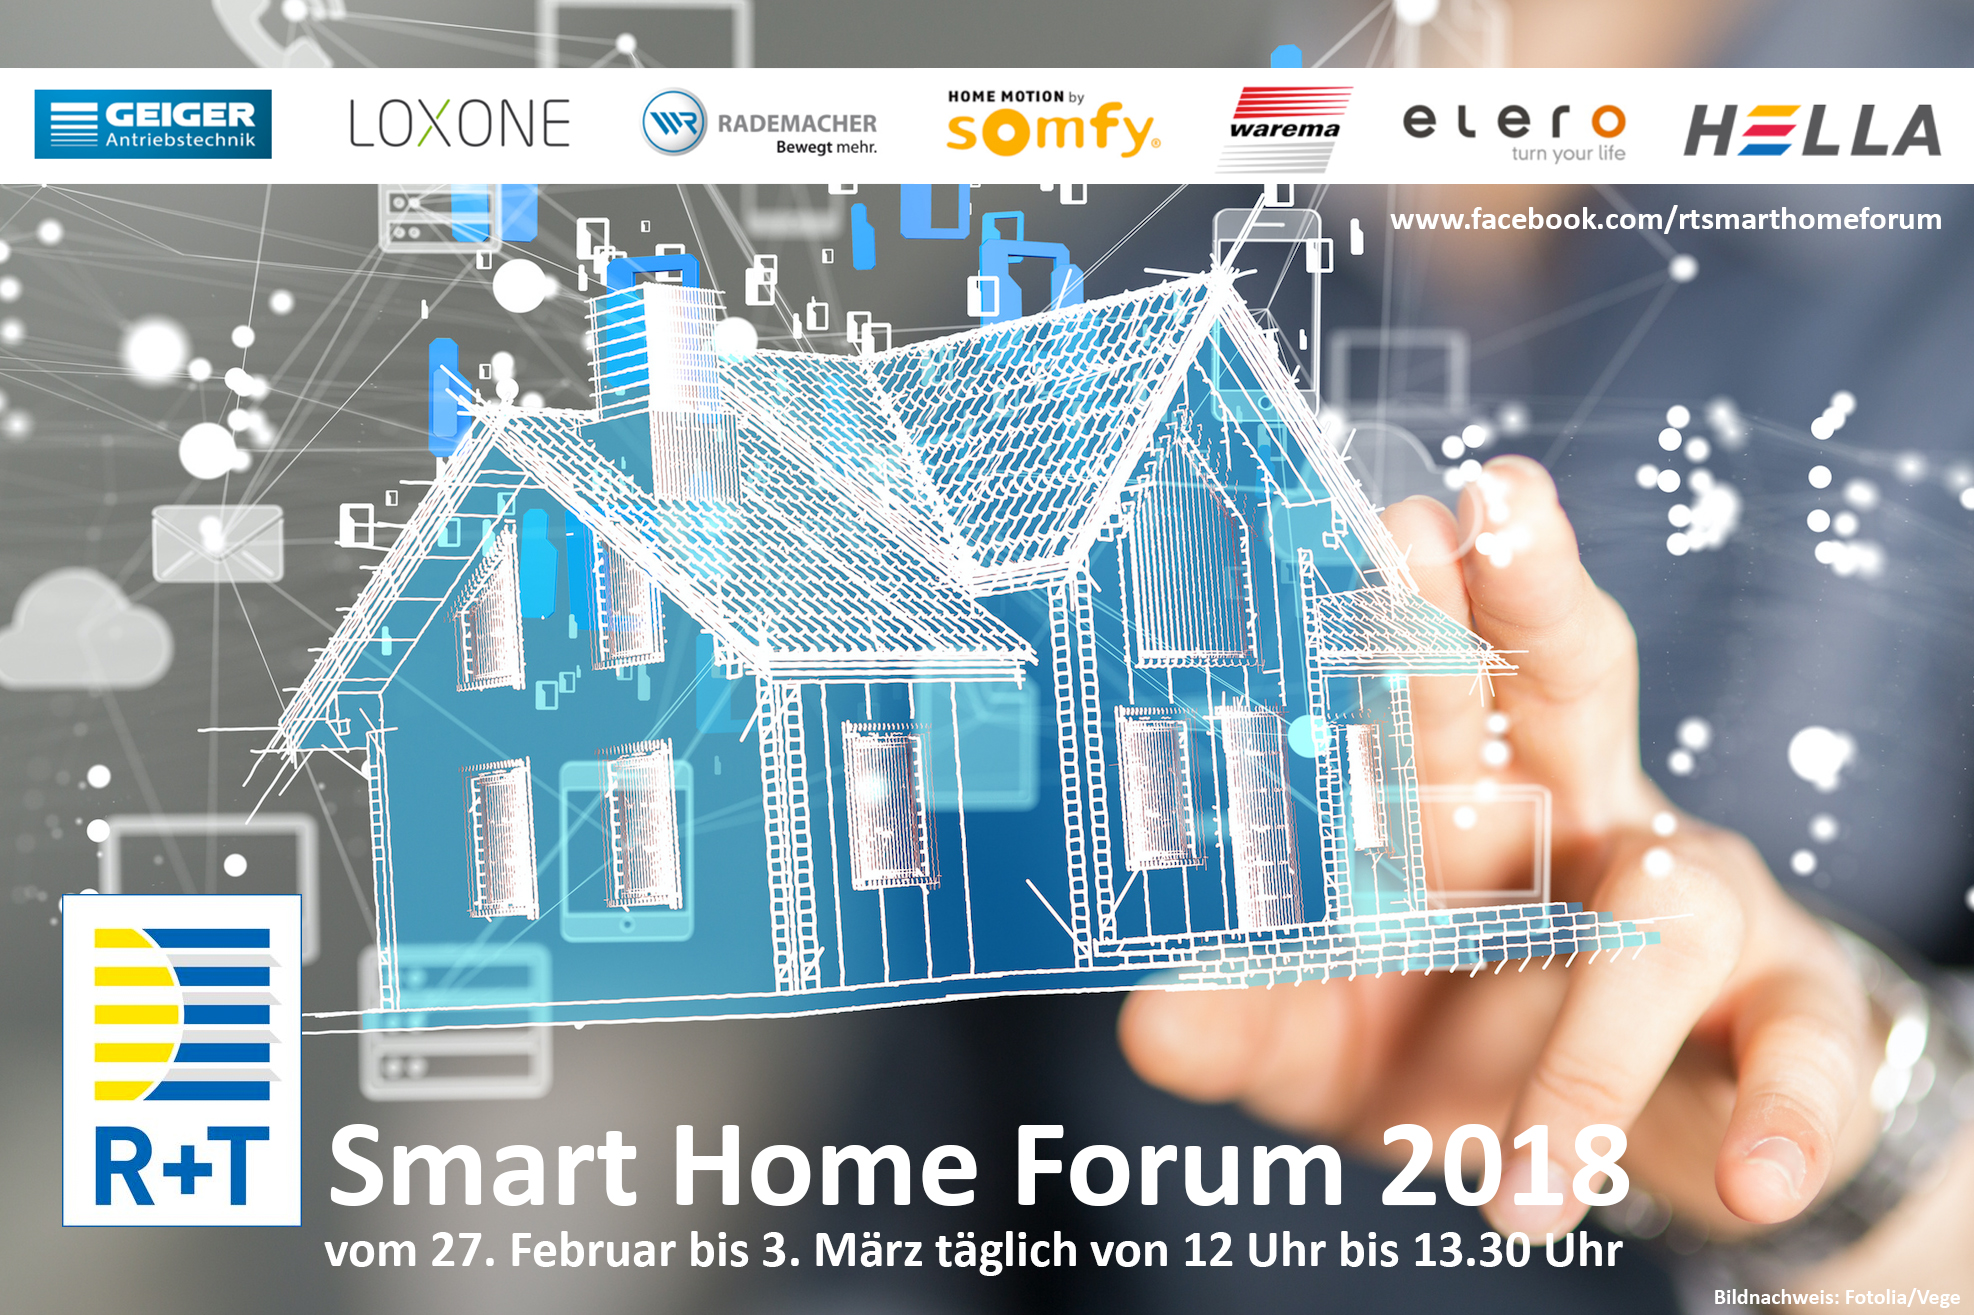 R+T Smart Home Forum